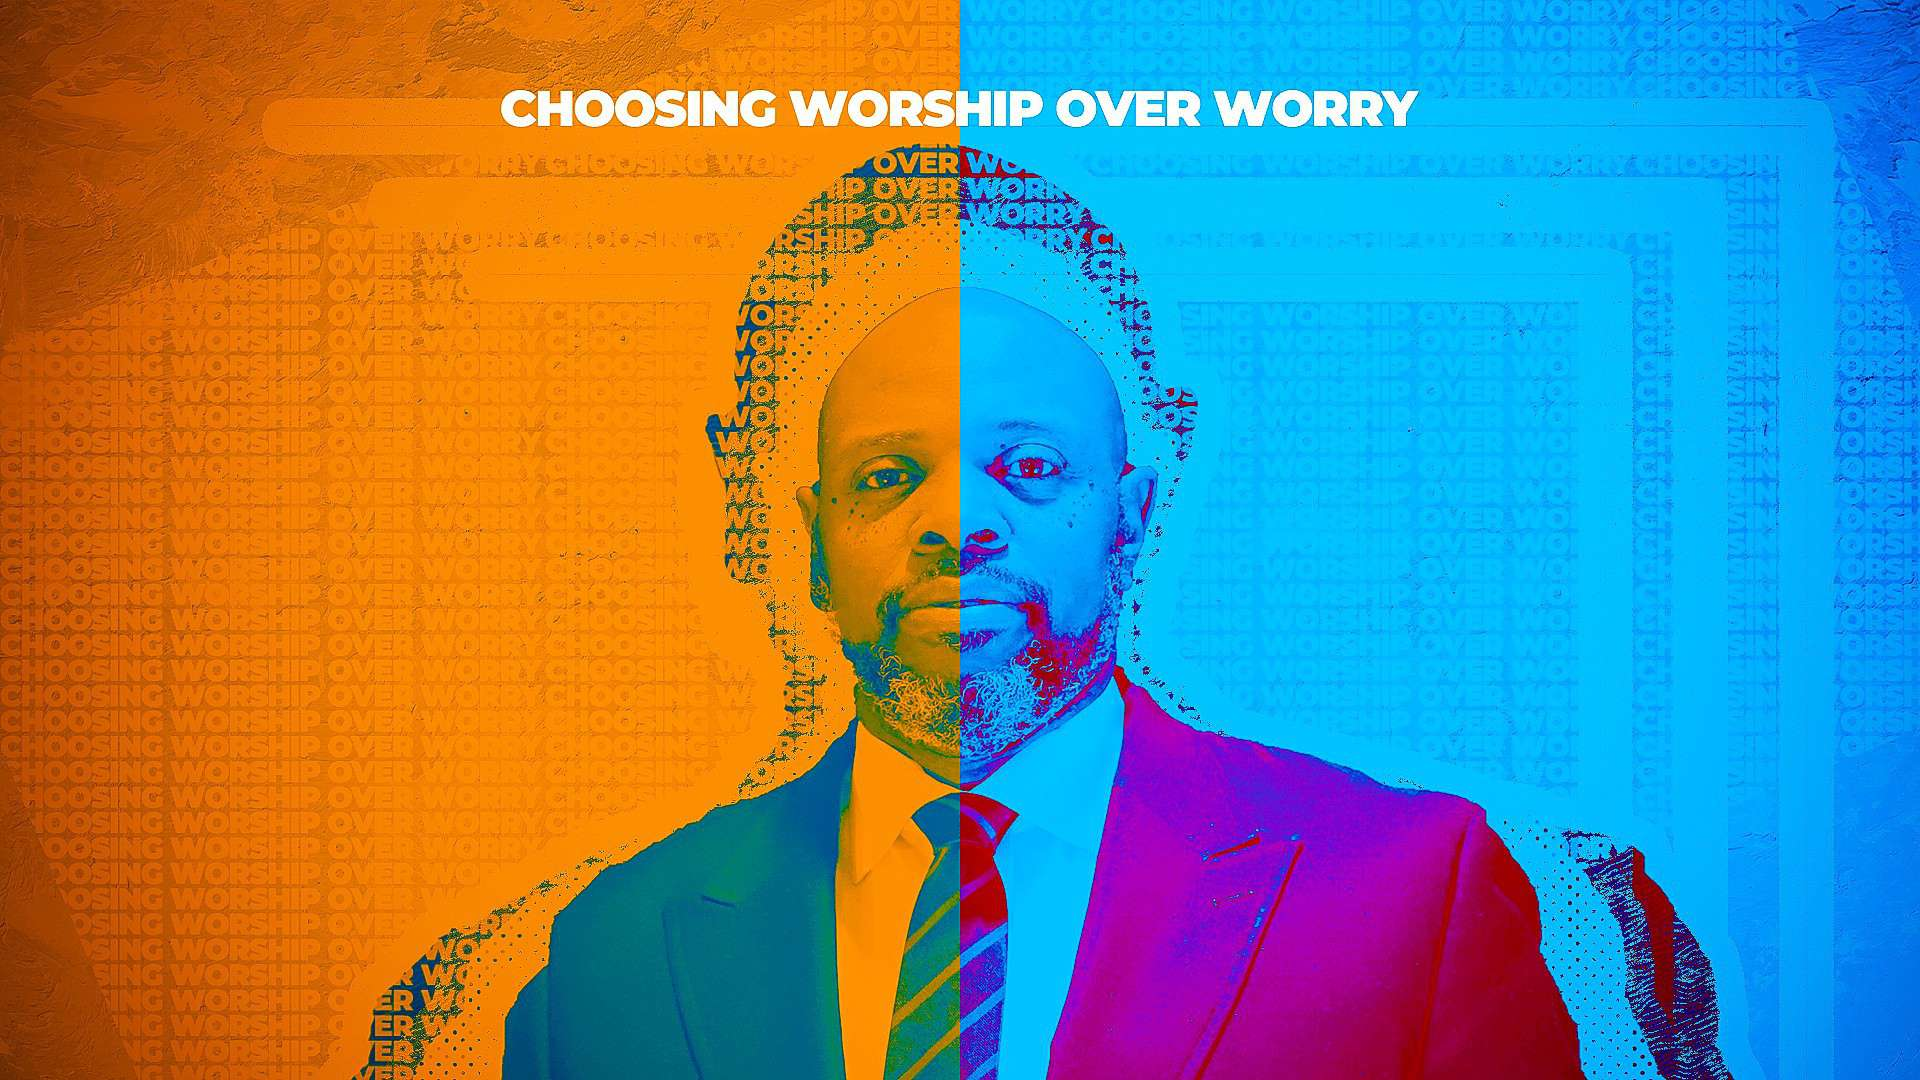 Choosing Worship Over Worry